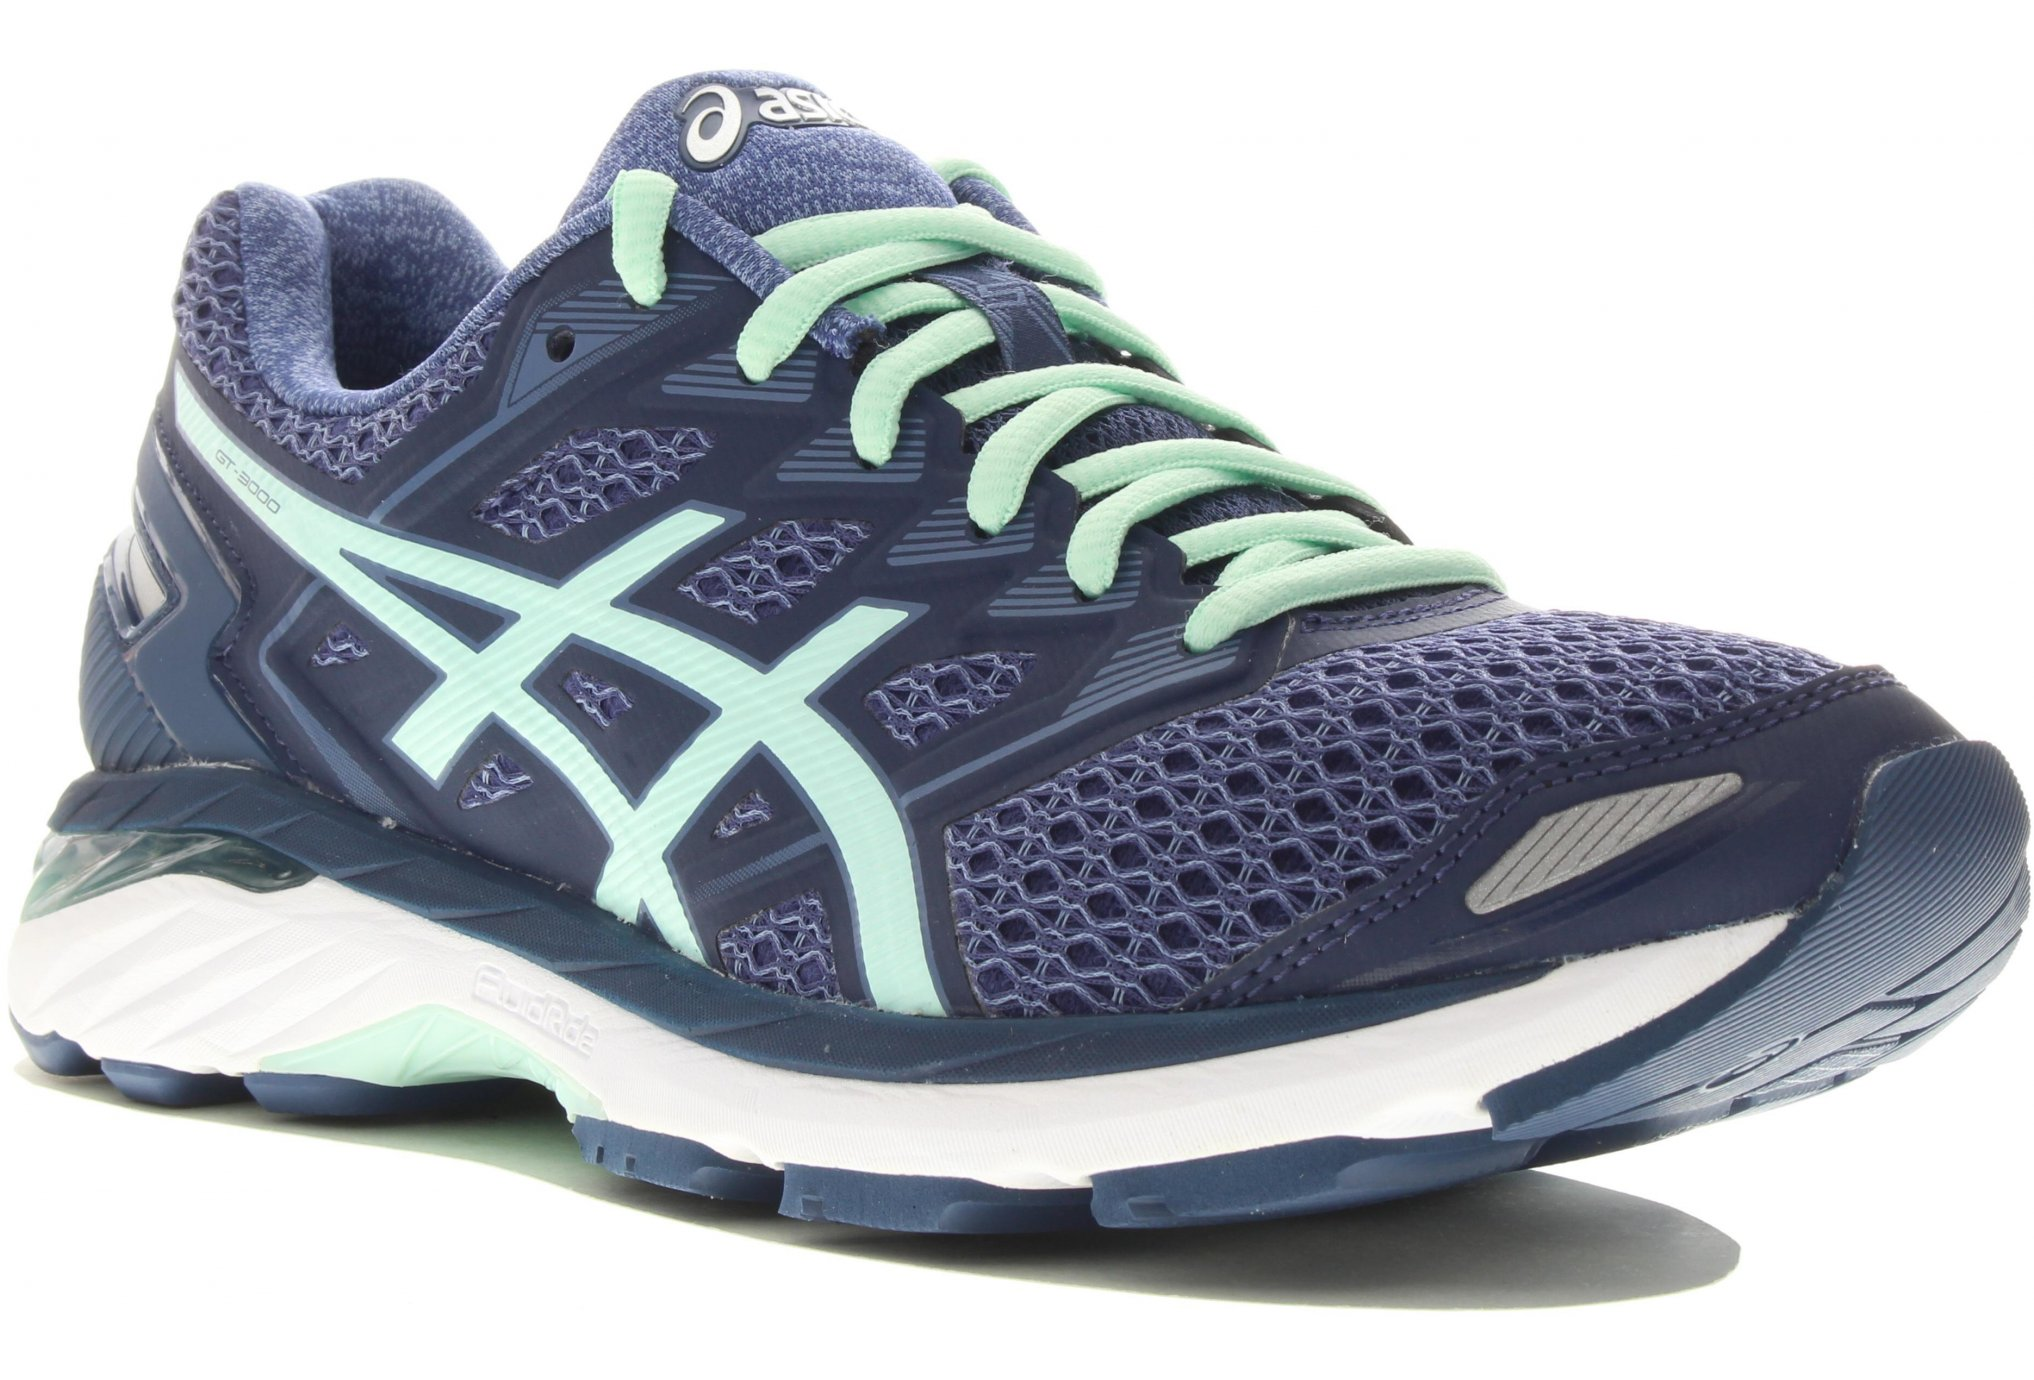 trail session asics fuzex w chaussures running femme. Black Bedroom Furniture Sets. Home Design Ideas